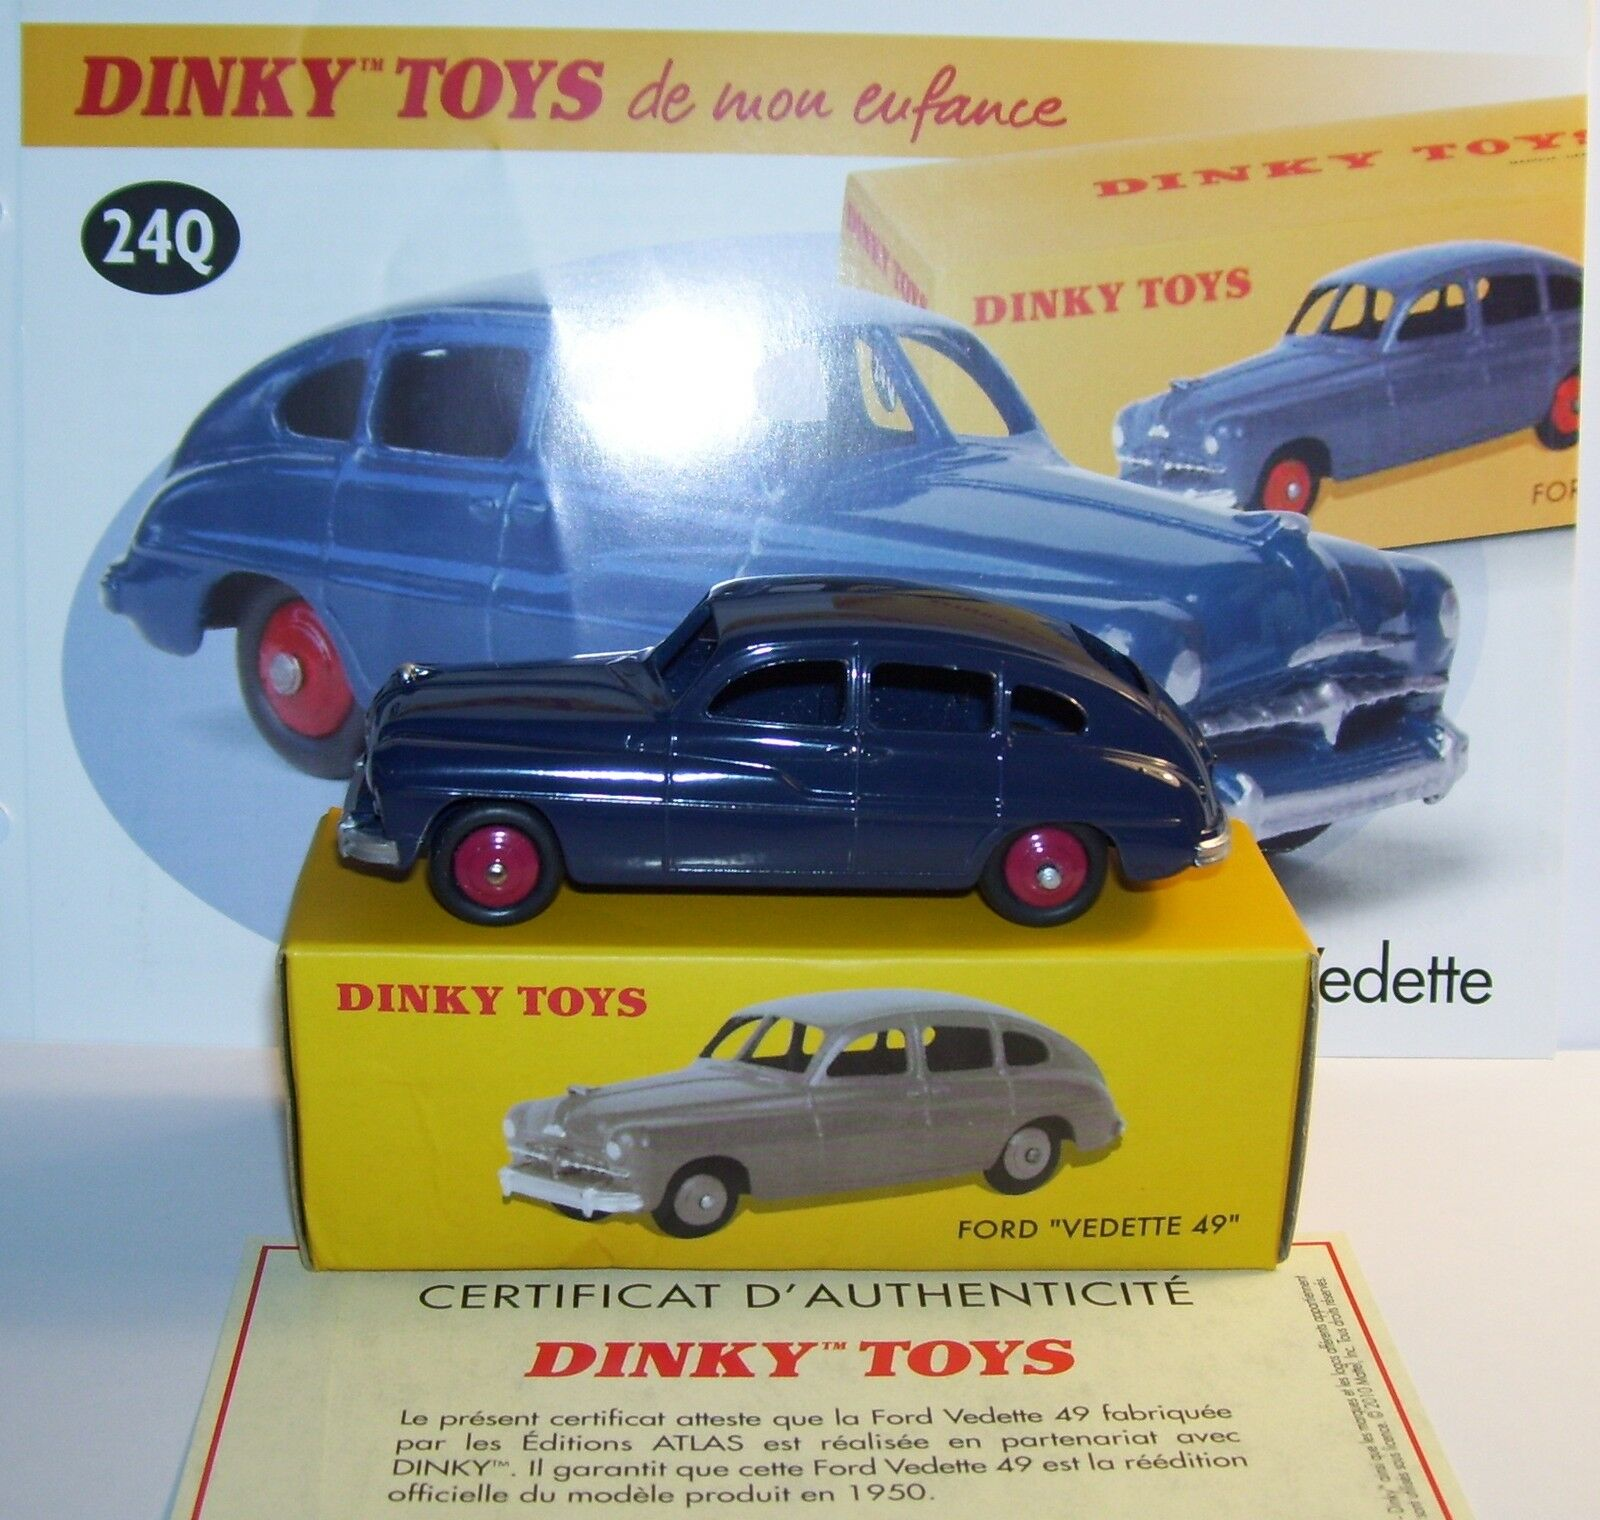 DINKY TOYS ATLAS FORD STAR 49 NAVY blueE REF 24Q 1 43 IN BOX